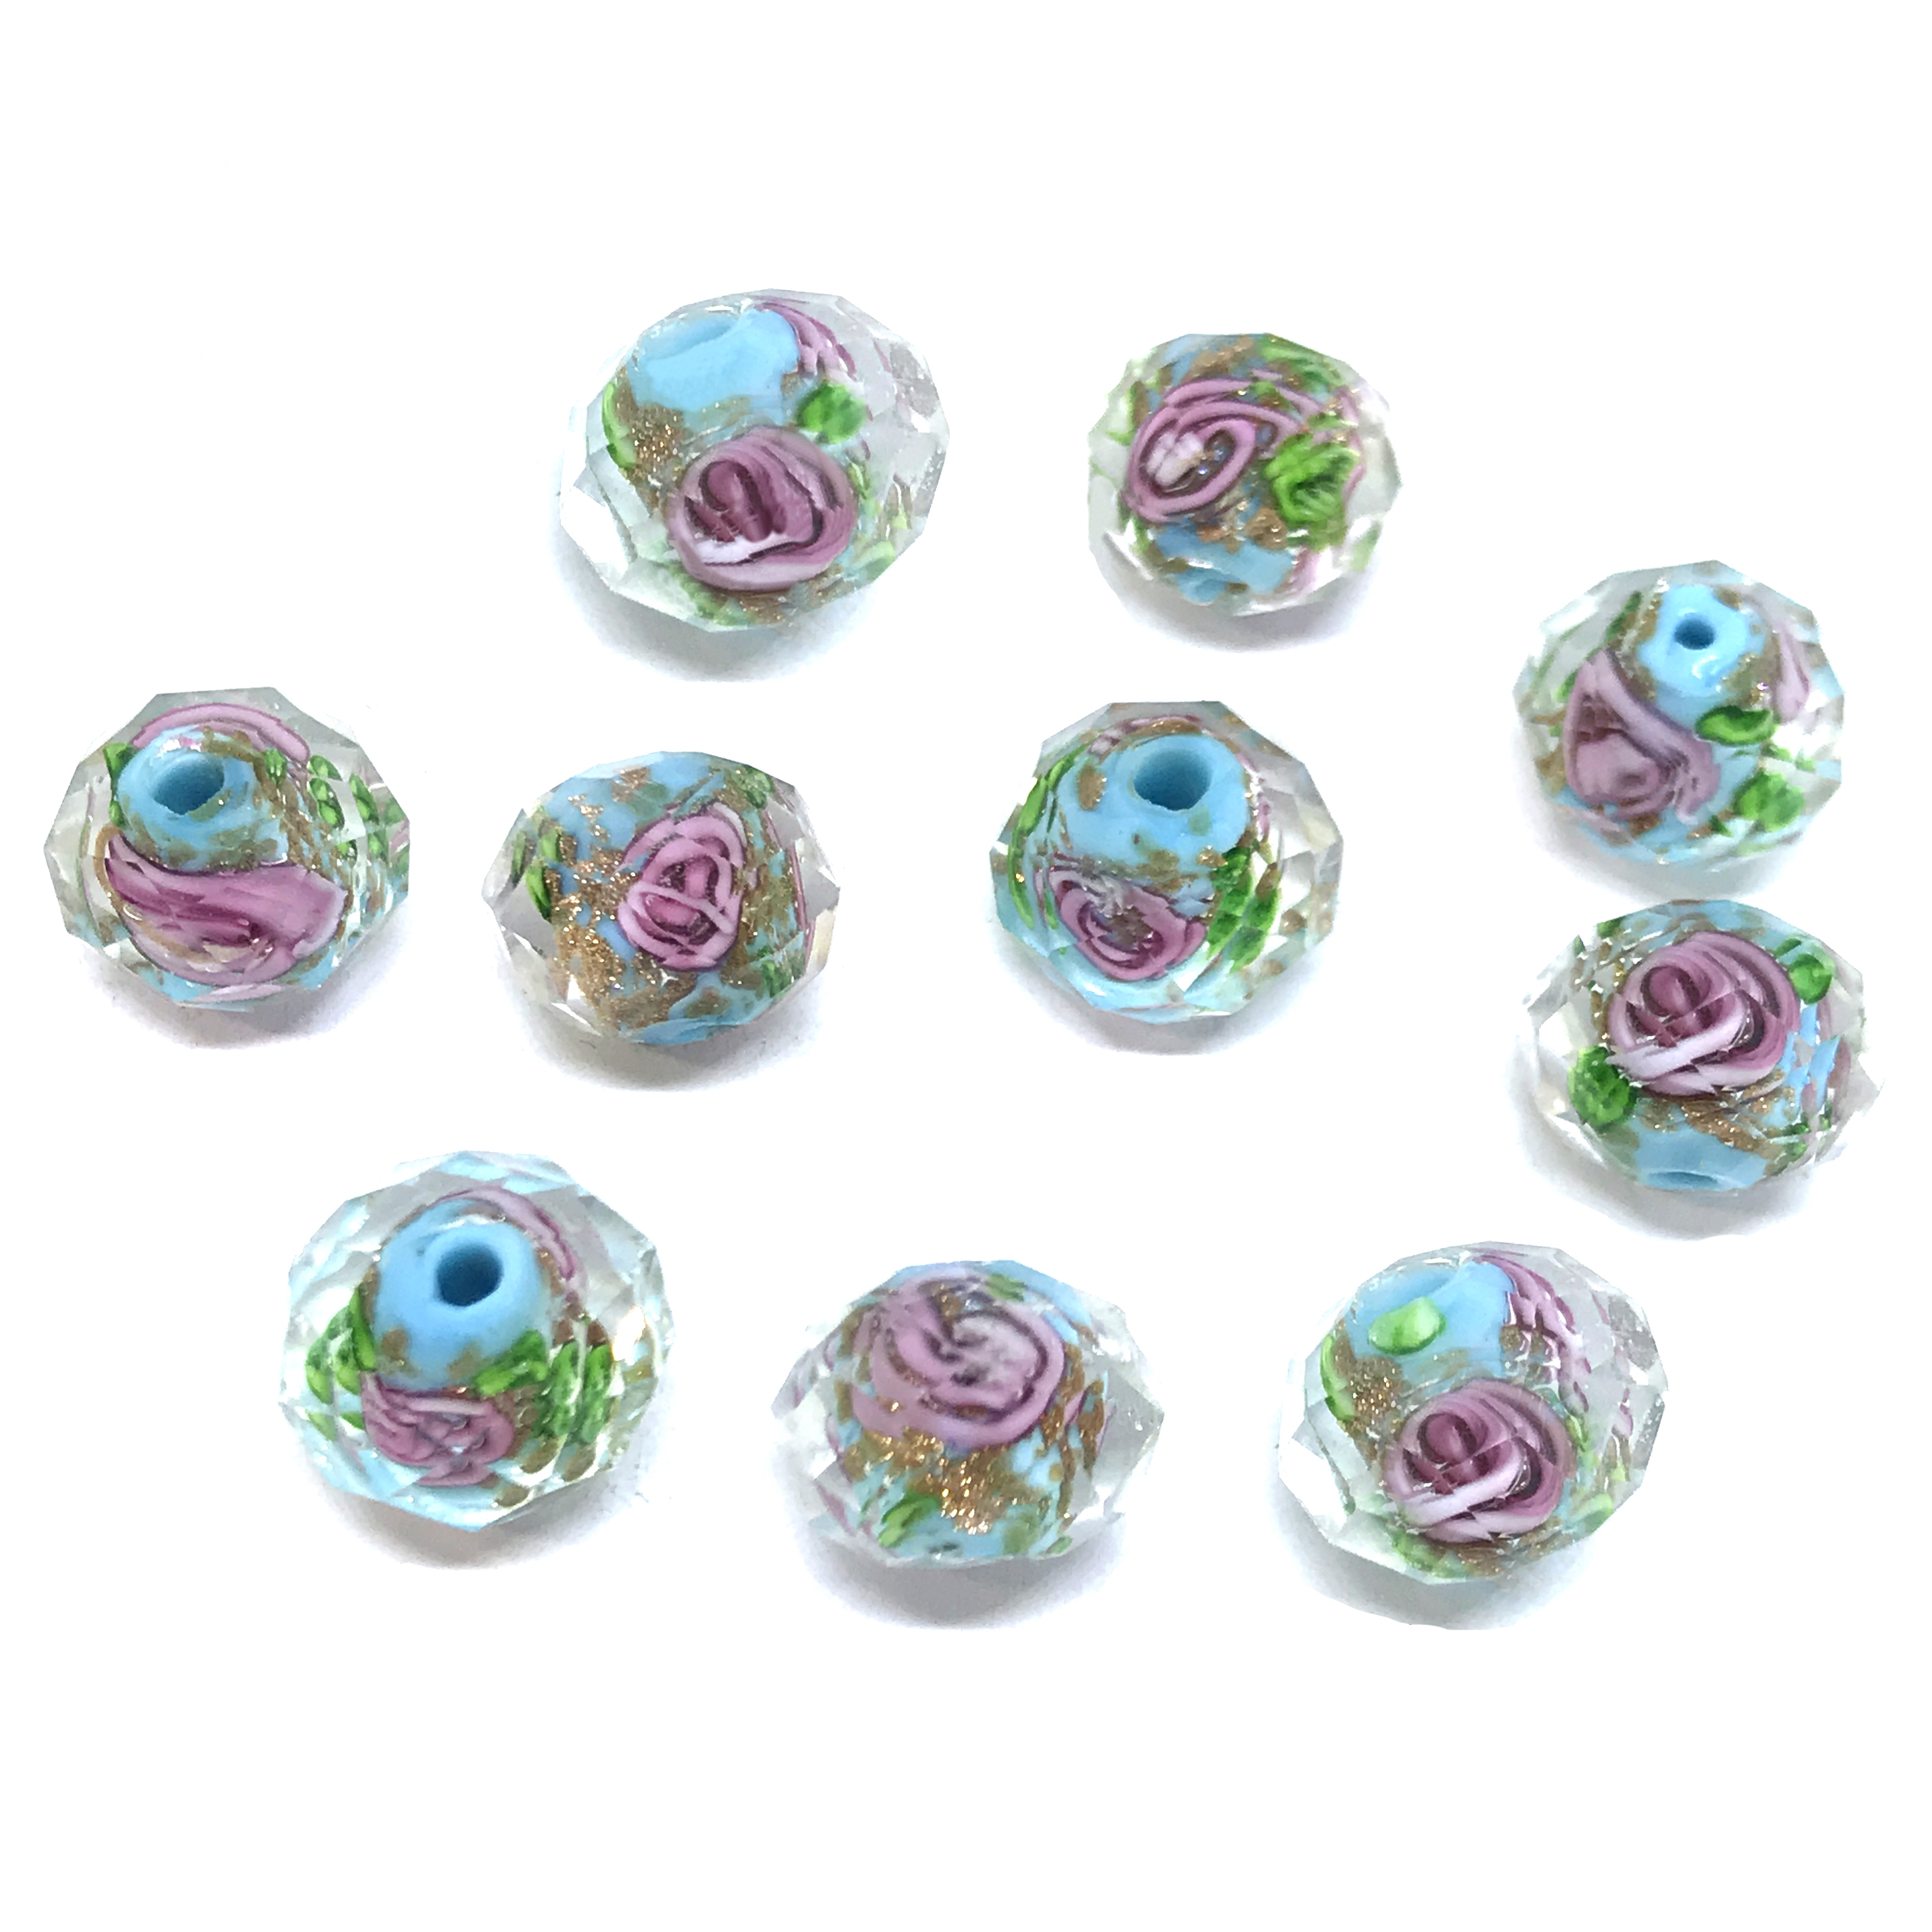 encased glass beads, floral beads, 01017, crystal beads, multi-color, pink rose, floral, blue beads, turquoise, glass beads, glass, faceted beads, facets, b'sue boutiques, jewelry supplies, beads, 9x12mm